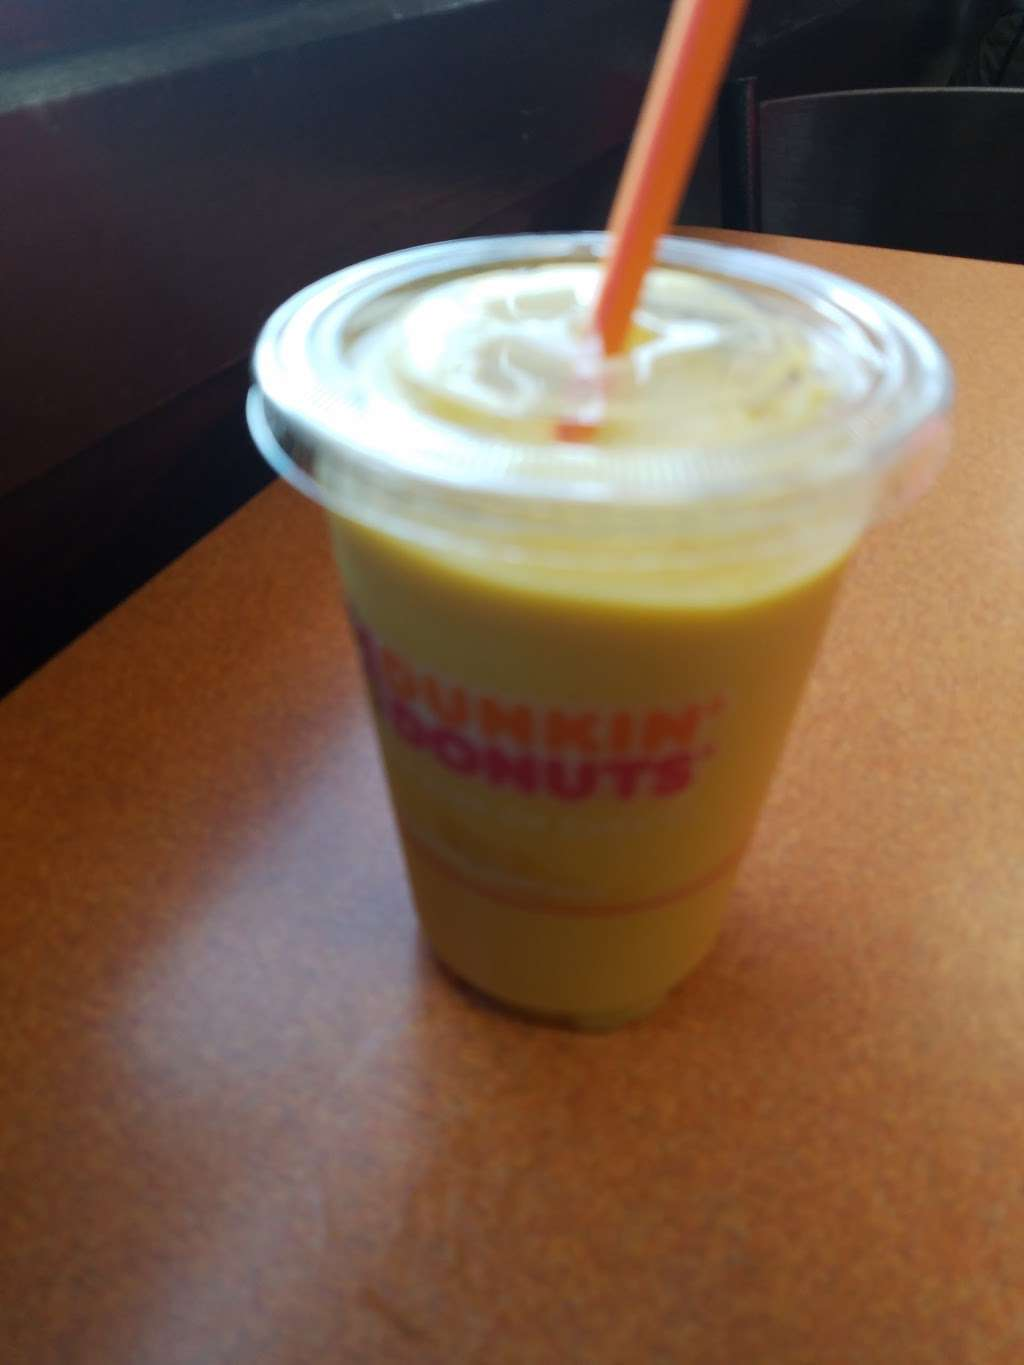 Dunkin Donuts - cafe  | Photo 3 of 10 | Address: 610 Utica Ave, Brooklyn, NY 11203, USA | Phone: (718) 604-0470